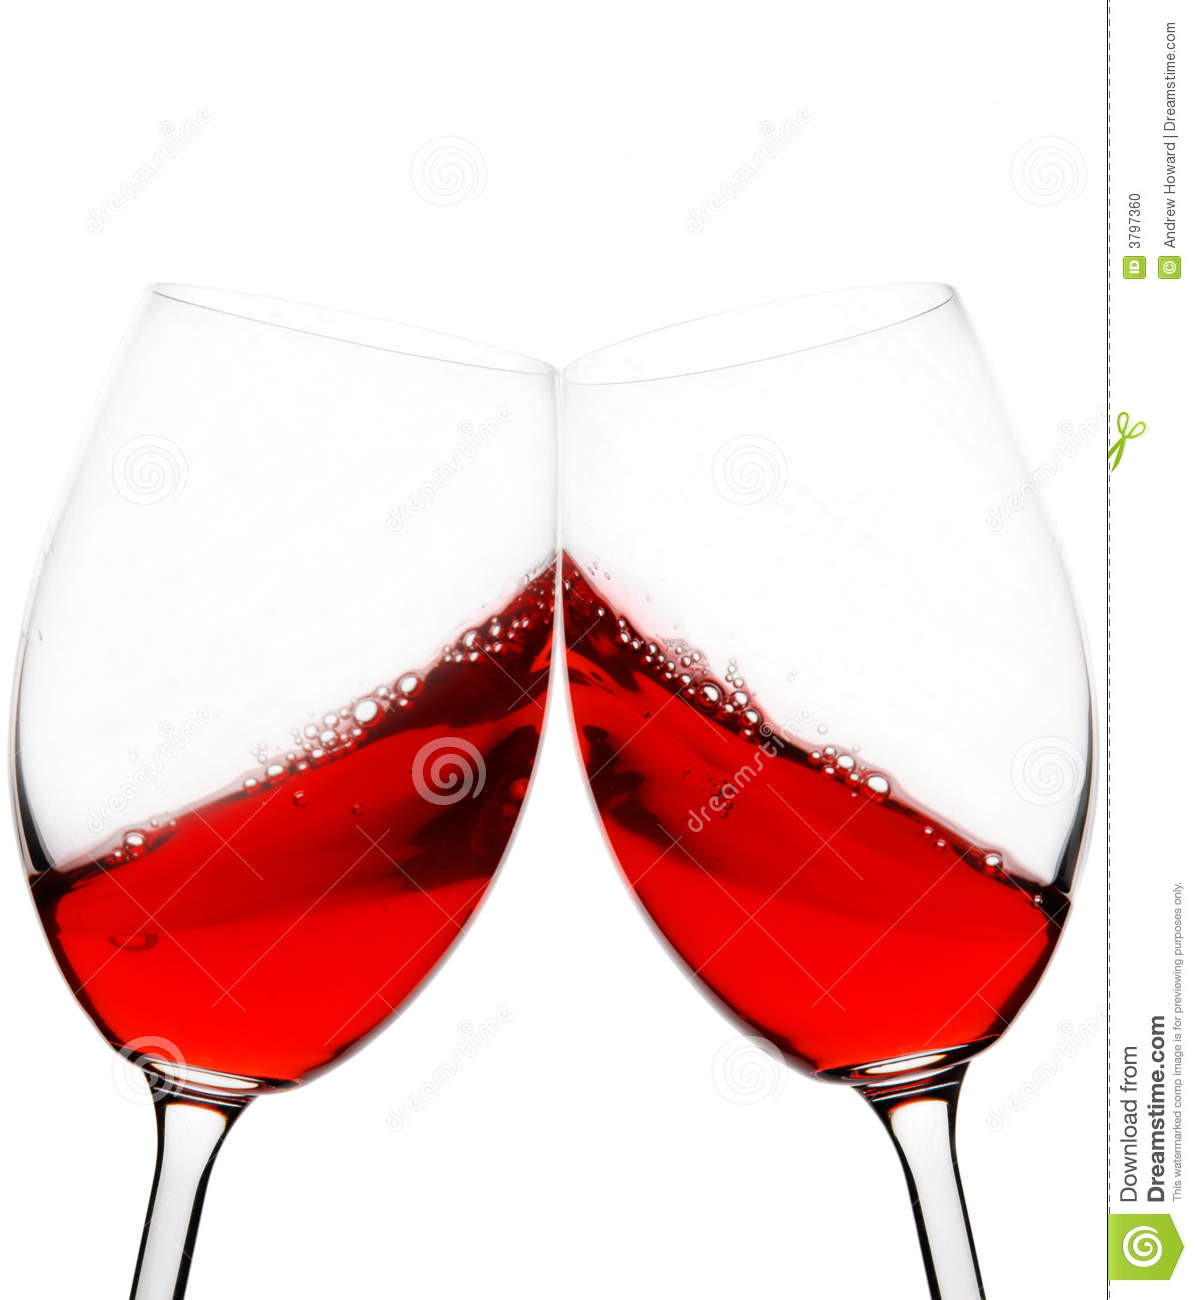 Two Red Wine Glasses Raised In A Toast Isolated On White